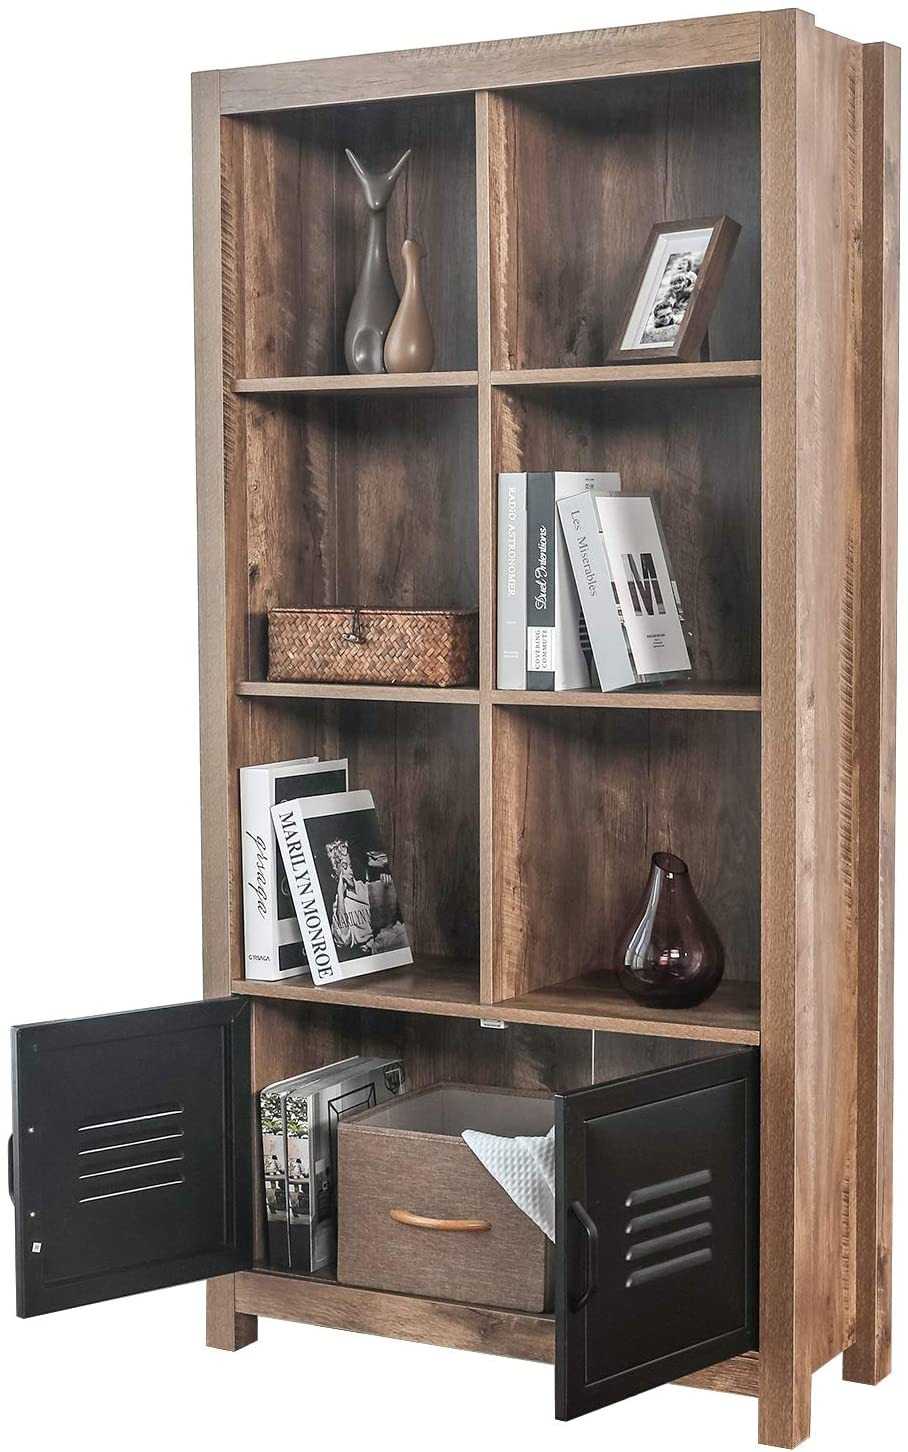 Book Cabinet with Doors Inspirational Bahom Bookcase Storage Shelves Retro Bookshelf with Doors 4 Tier Cabinet for Books S and Decorations